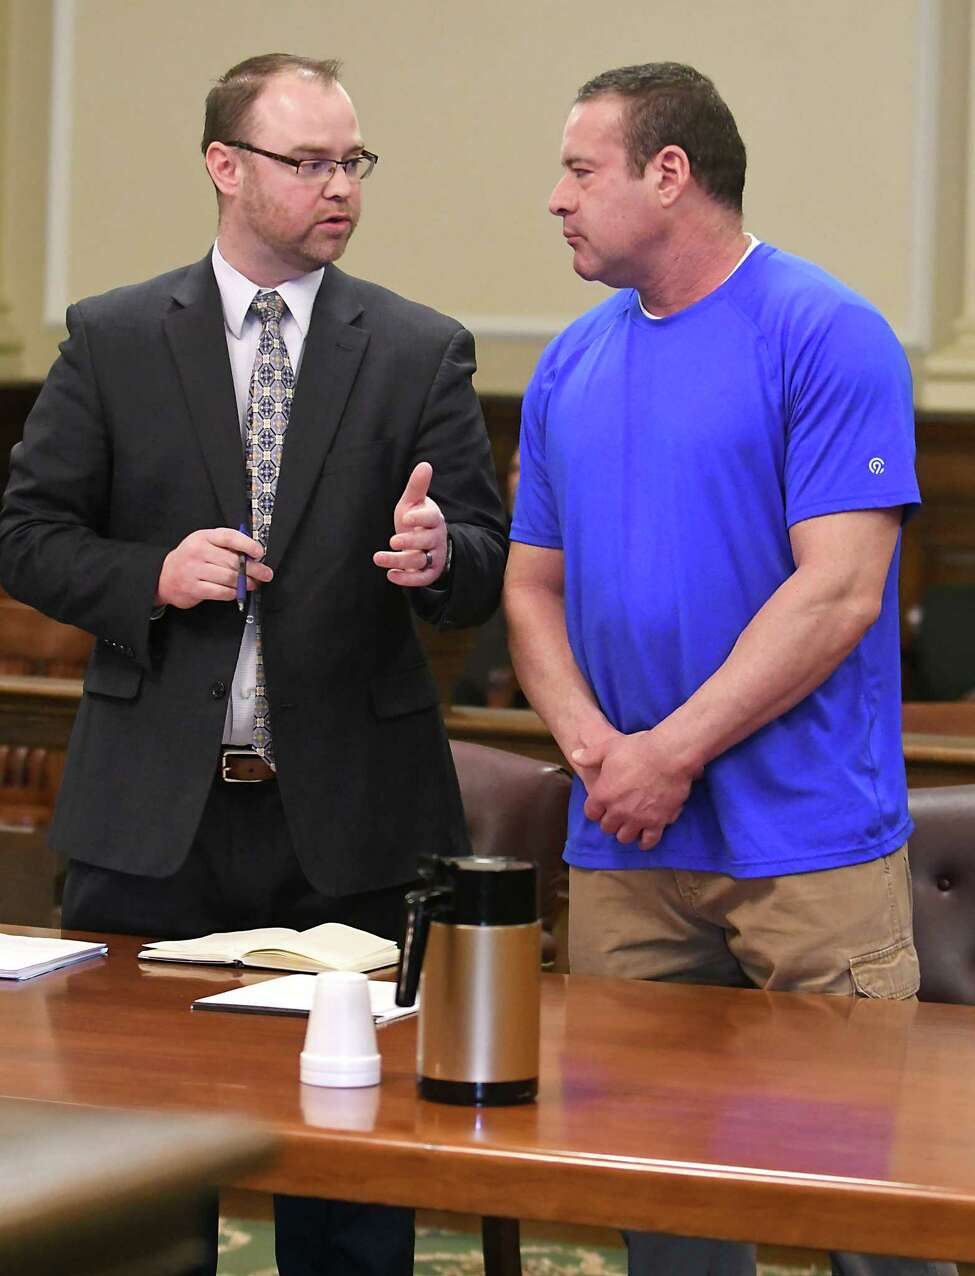 Defense attorney Shane Hug, left, stands with his client Troy Police Sgt. Ronald Epstein as Albany County Court Judge Peter Lynch opens a sealed indictment at the Rensselaer County Court House on Friday, Feb. 2, 2018, in Troy, N.Y. (Lori Van Buren/Times Union)